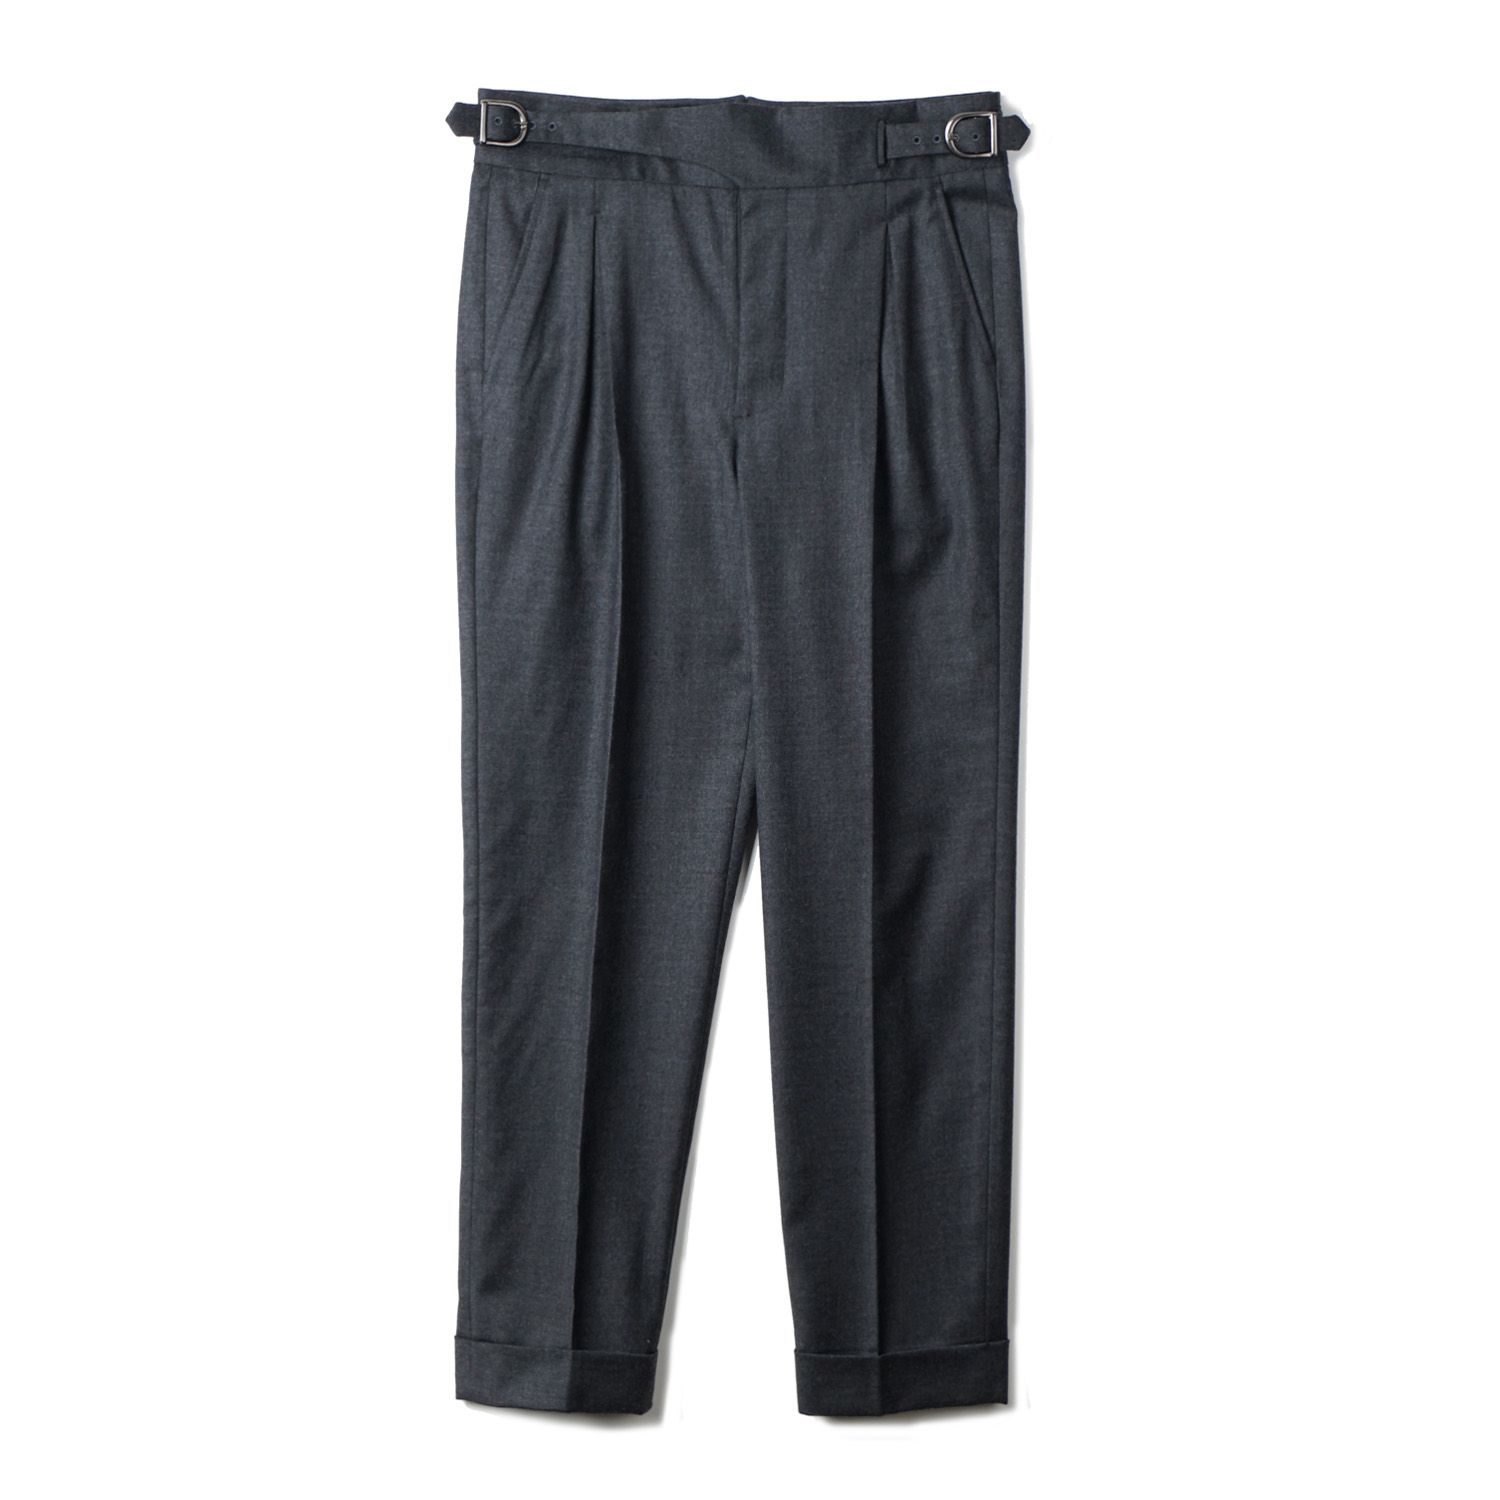 TJA Wool Gurkha Pants - Grey